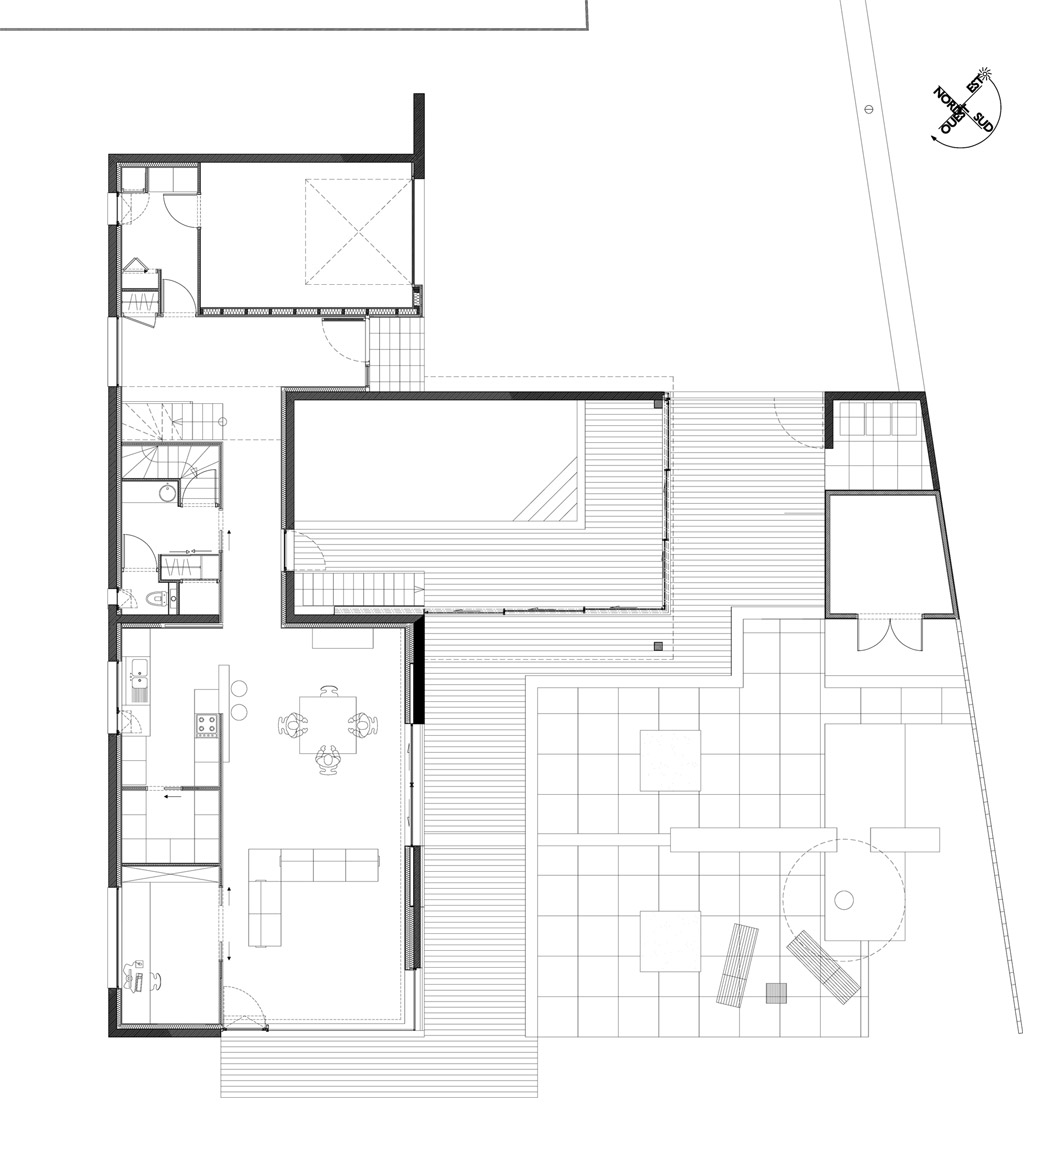 Maison contemporaine avec piscine int rieure apla for L architecture moderne plan